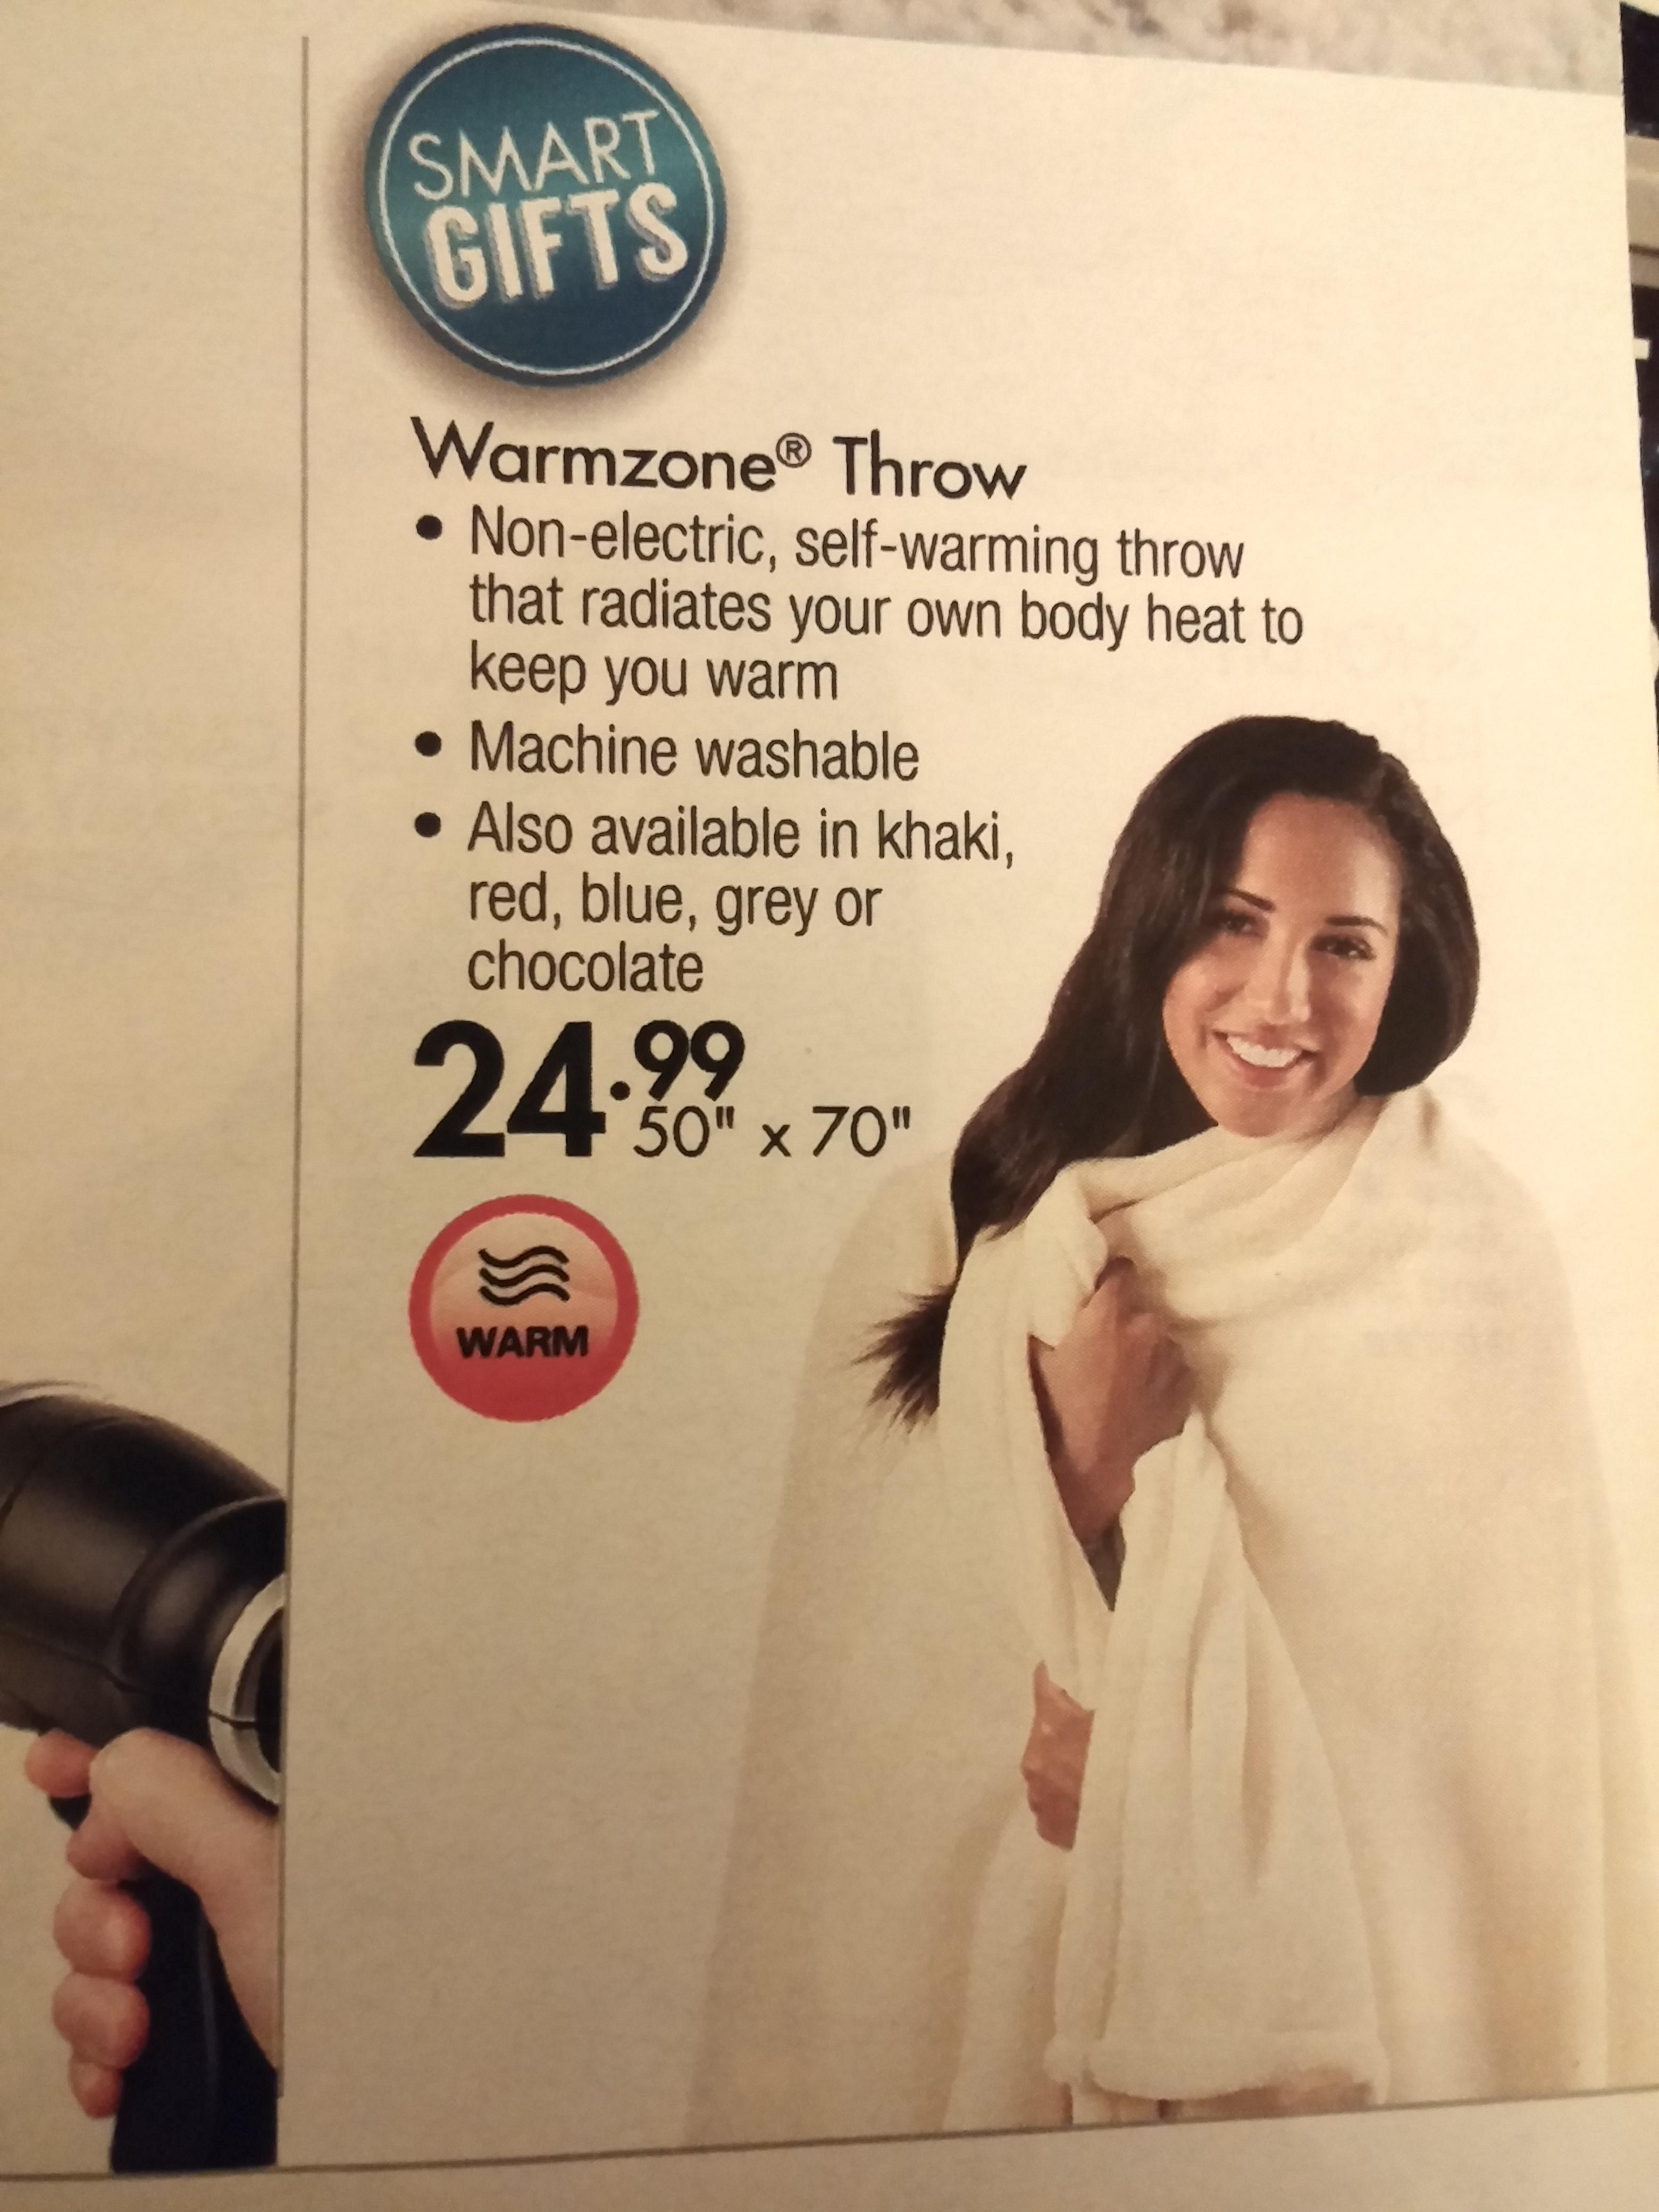 so its a normal blanket.